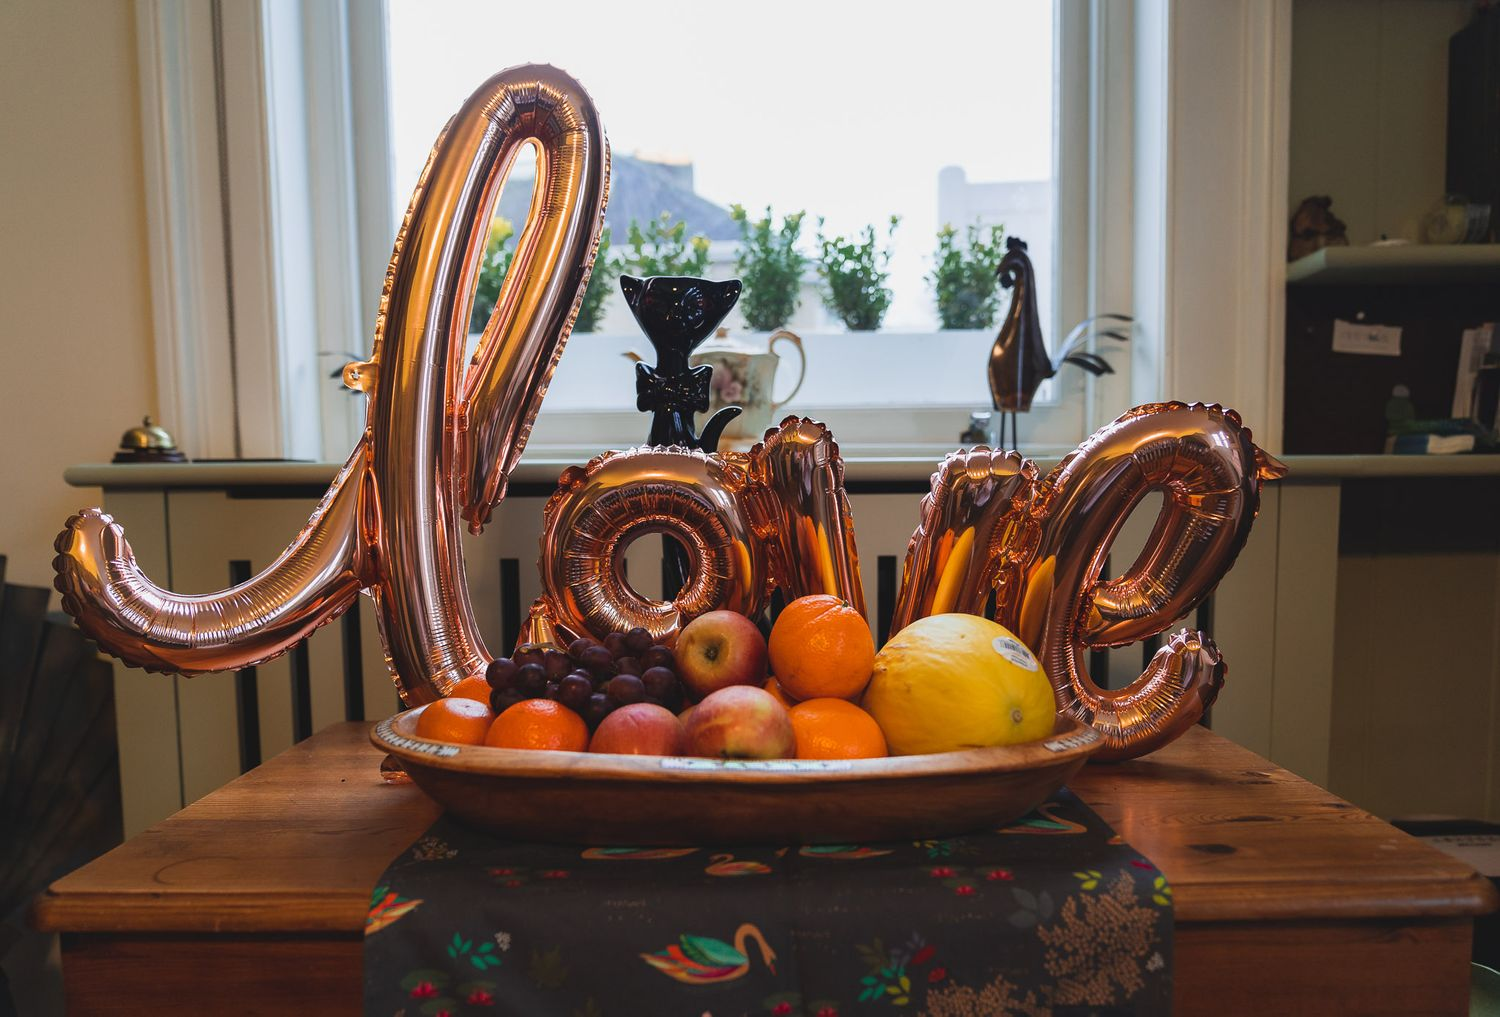 A rose gold love balloon is propped up on a bowl of fruit.